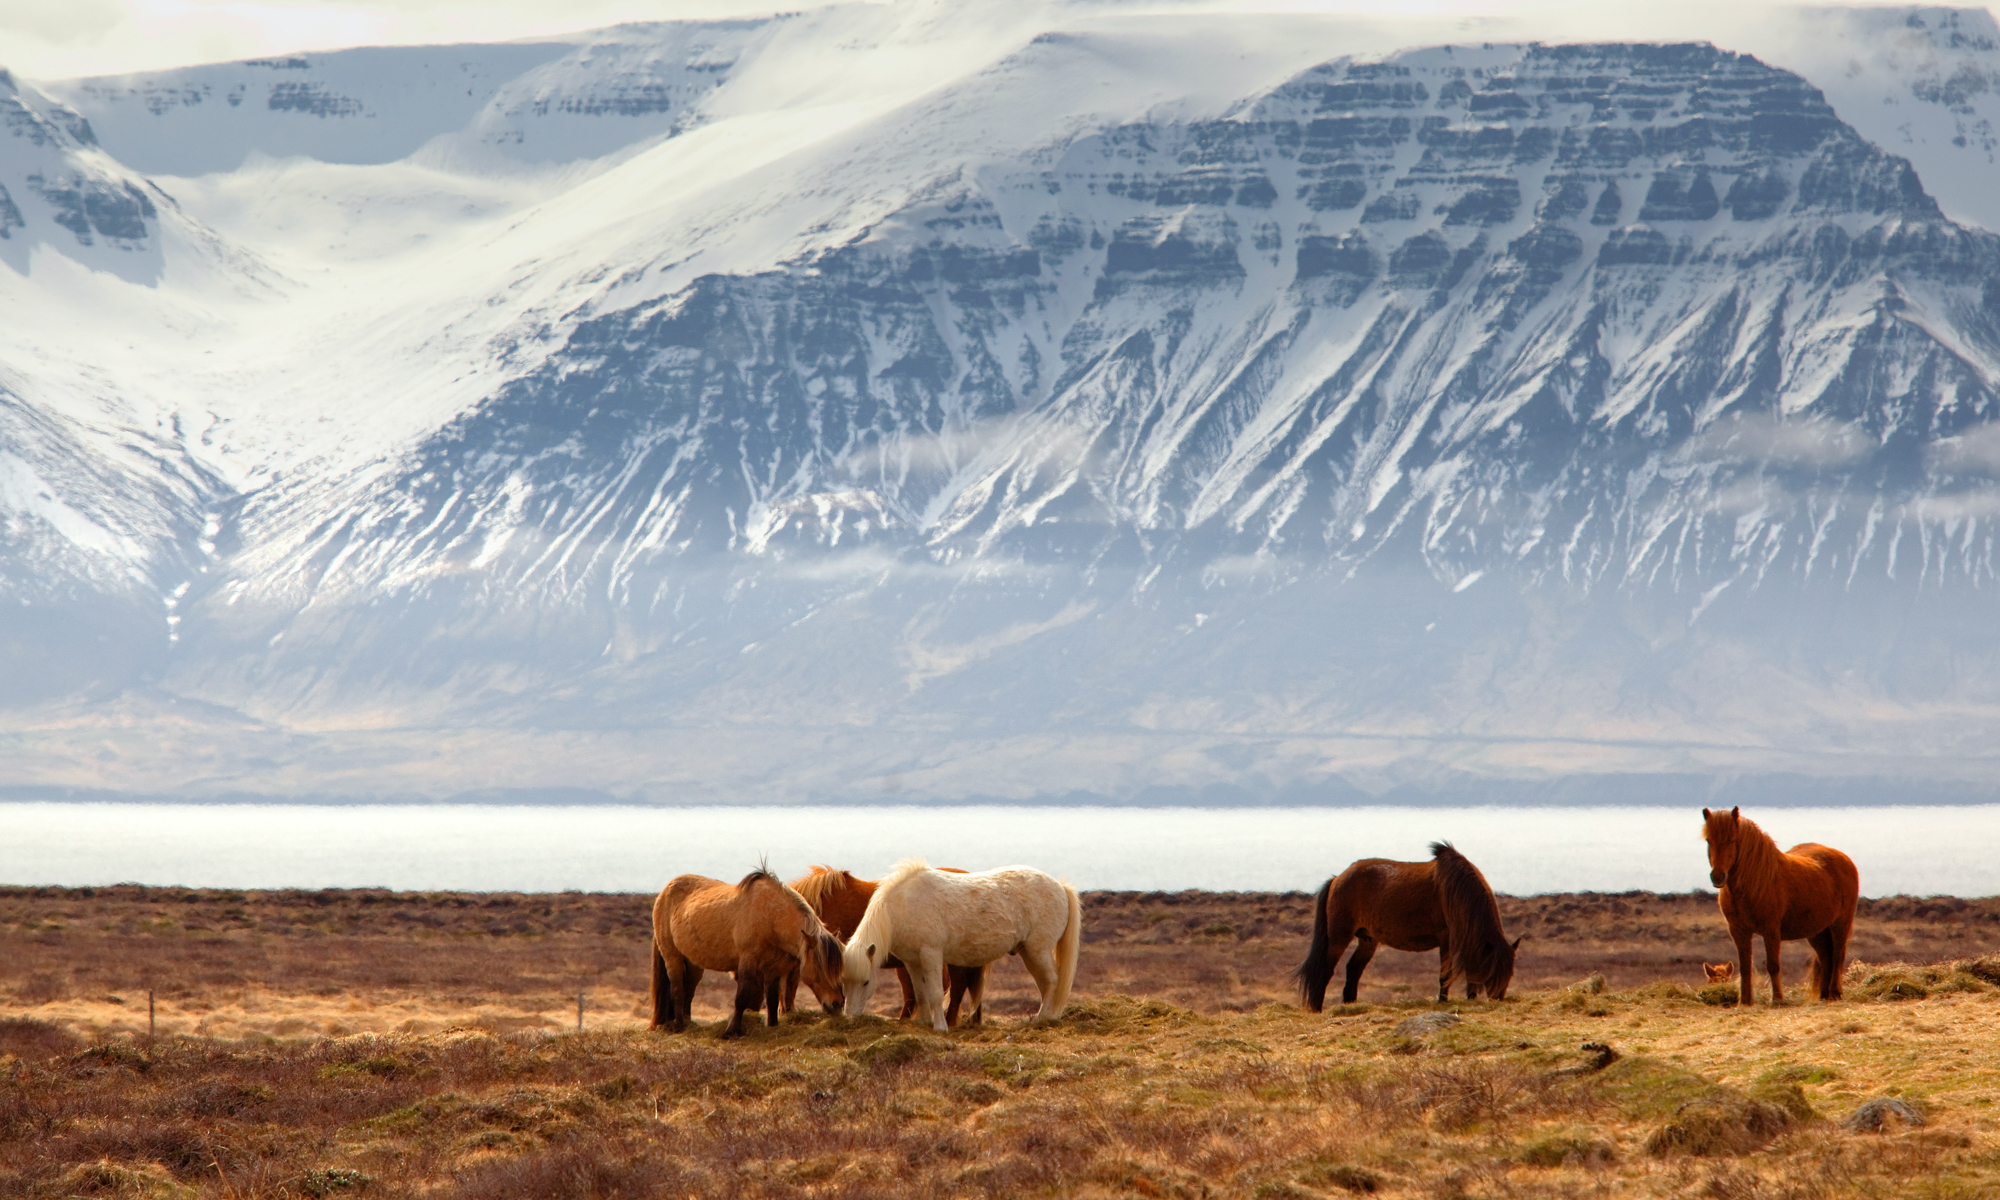 Five Icelandic horses grazing at the base of a snowy mountain